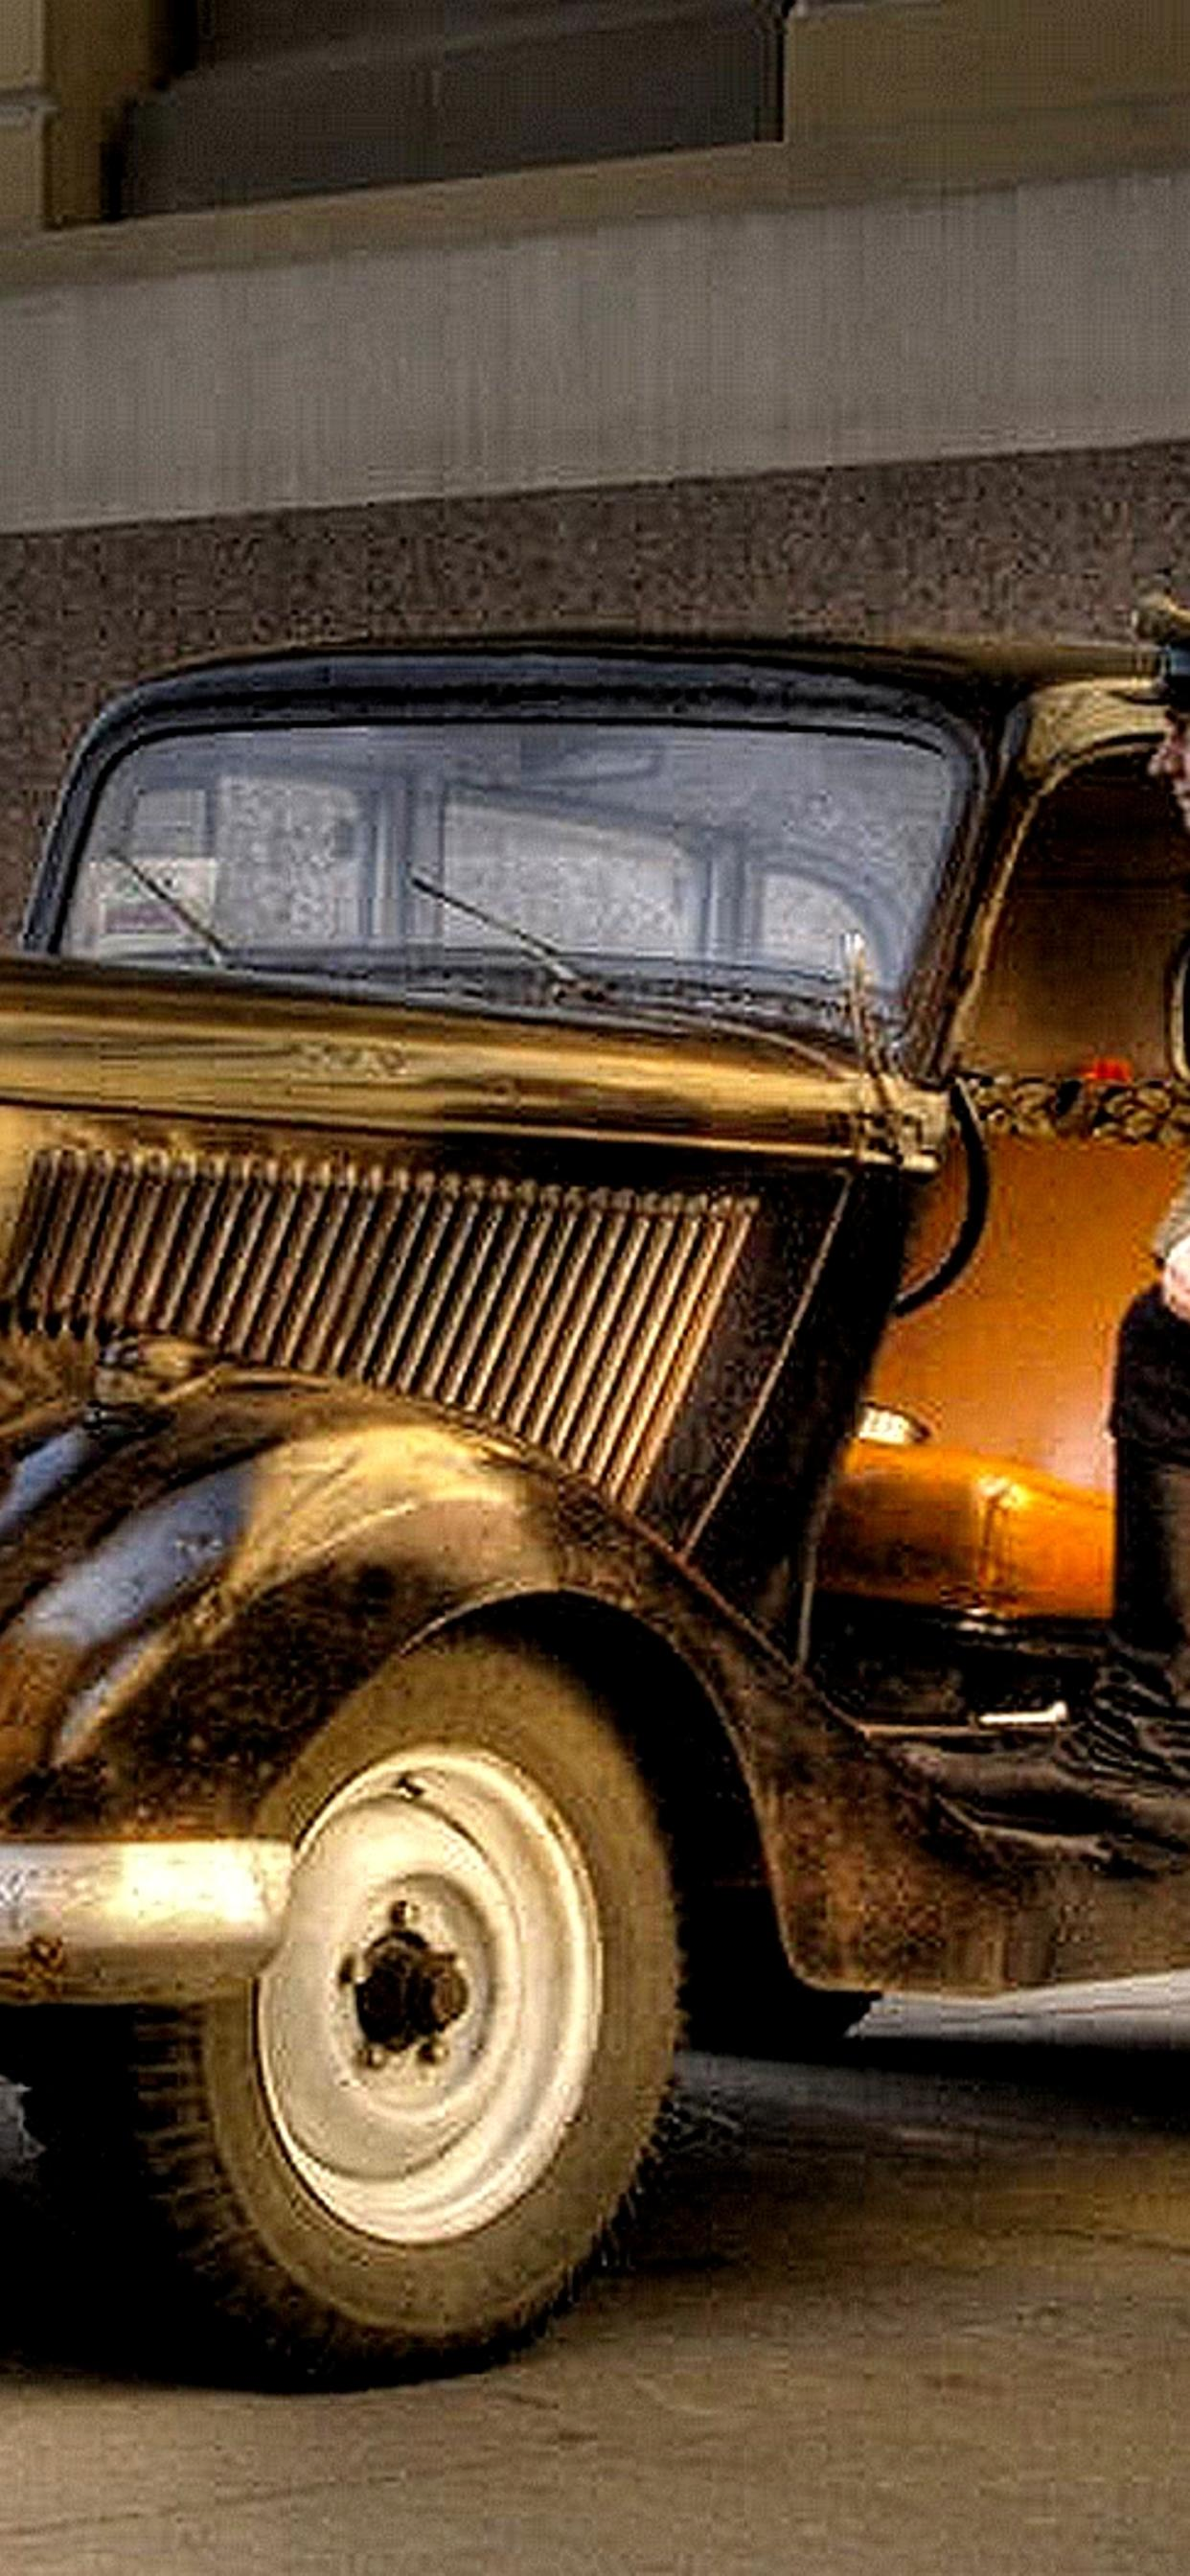 Old Car Used In The Army Hd Wallpaper